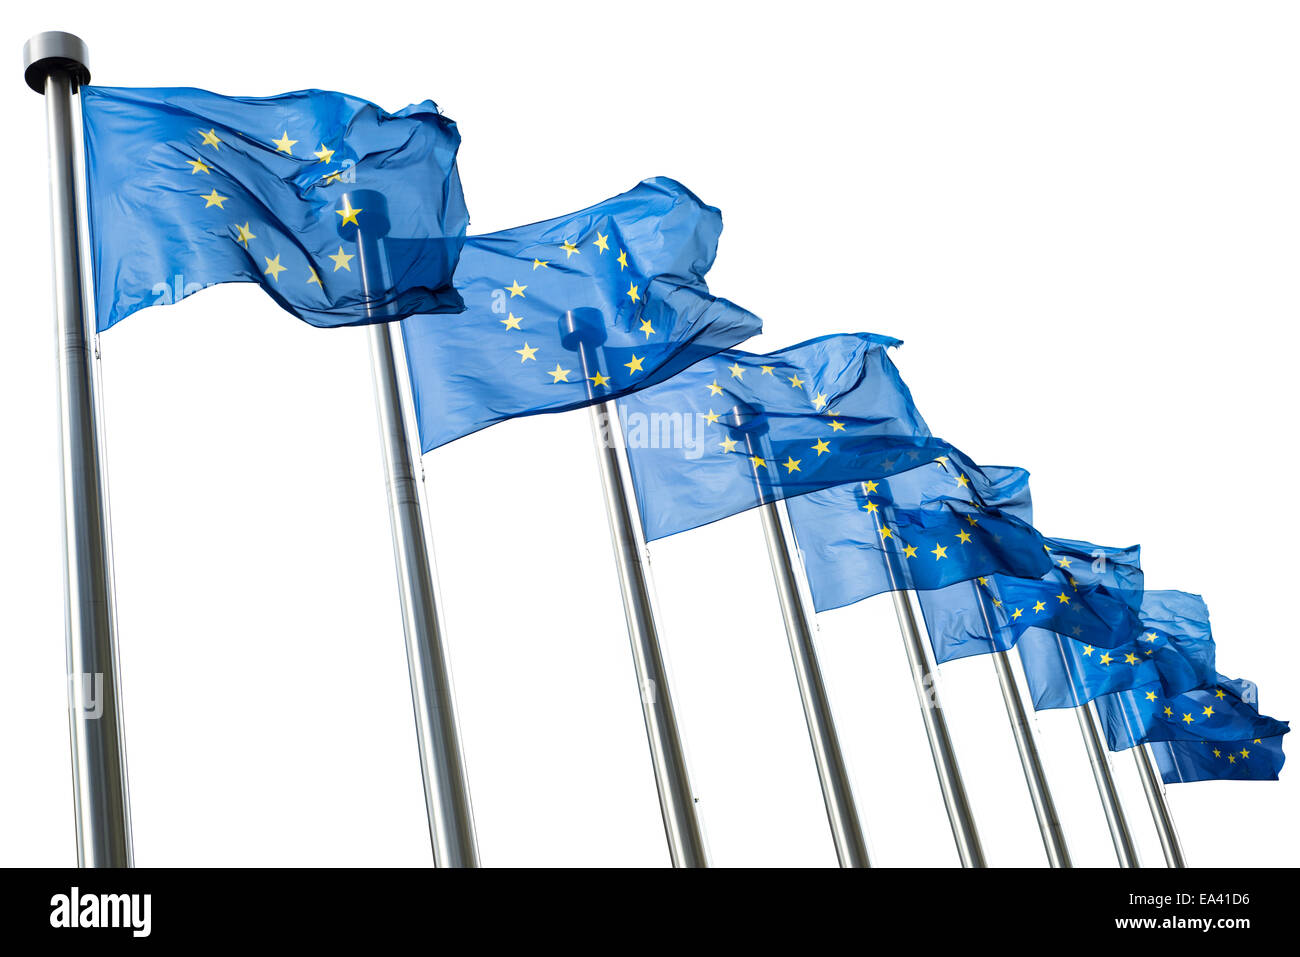 European Union flags isolated on white - Stock Image